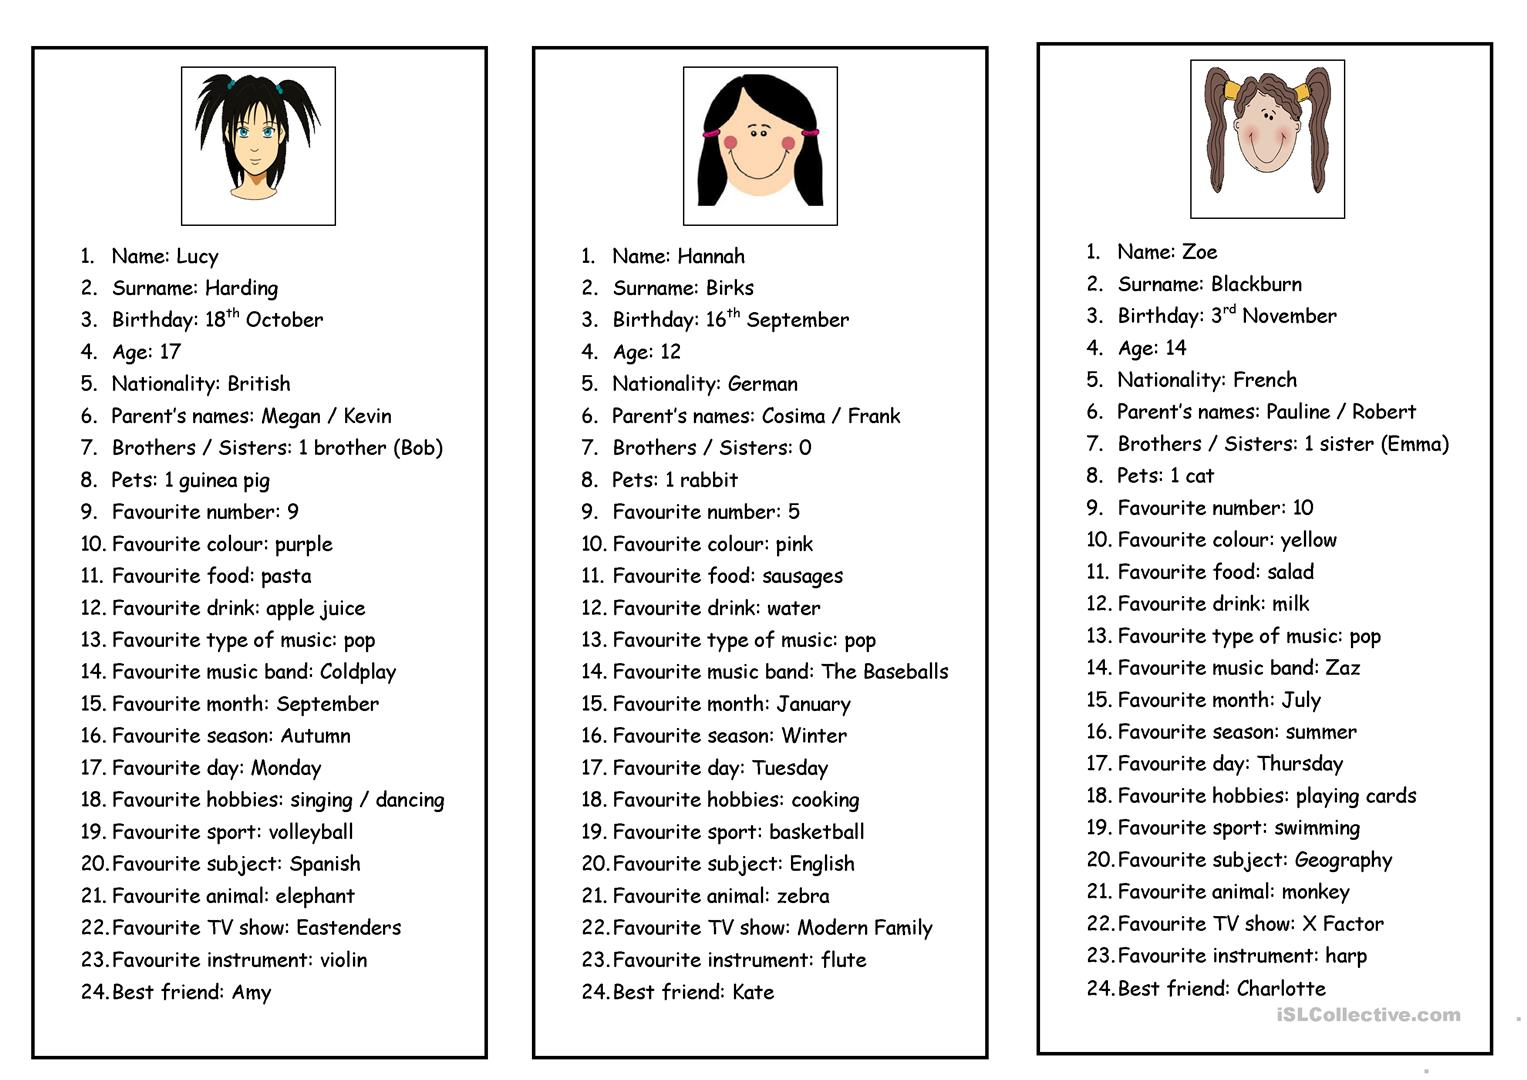 Personal Information Cards Worksheet